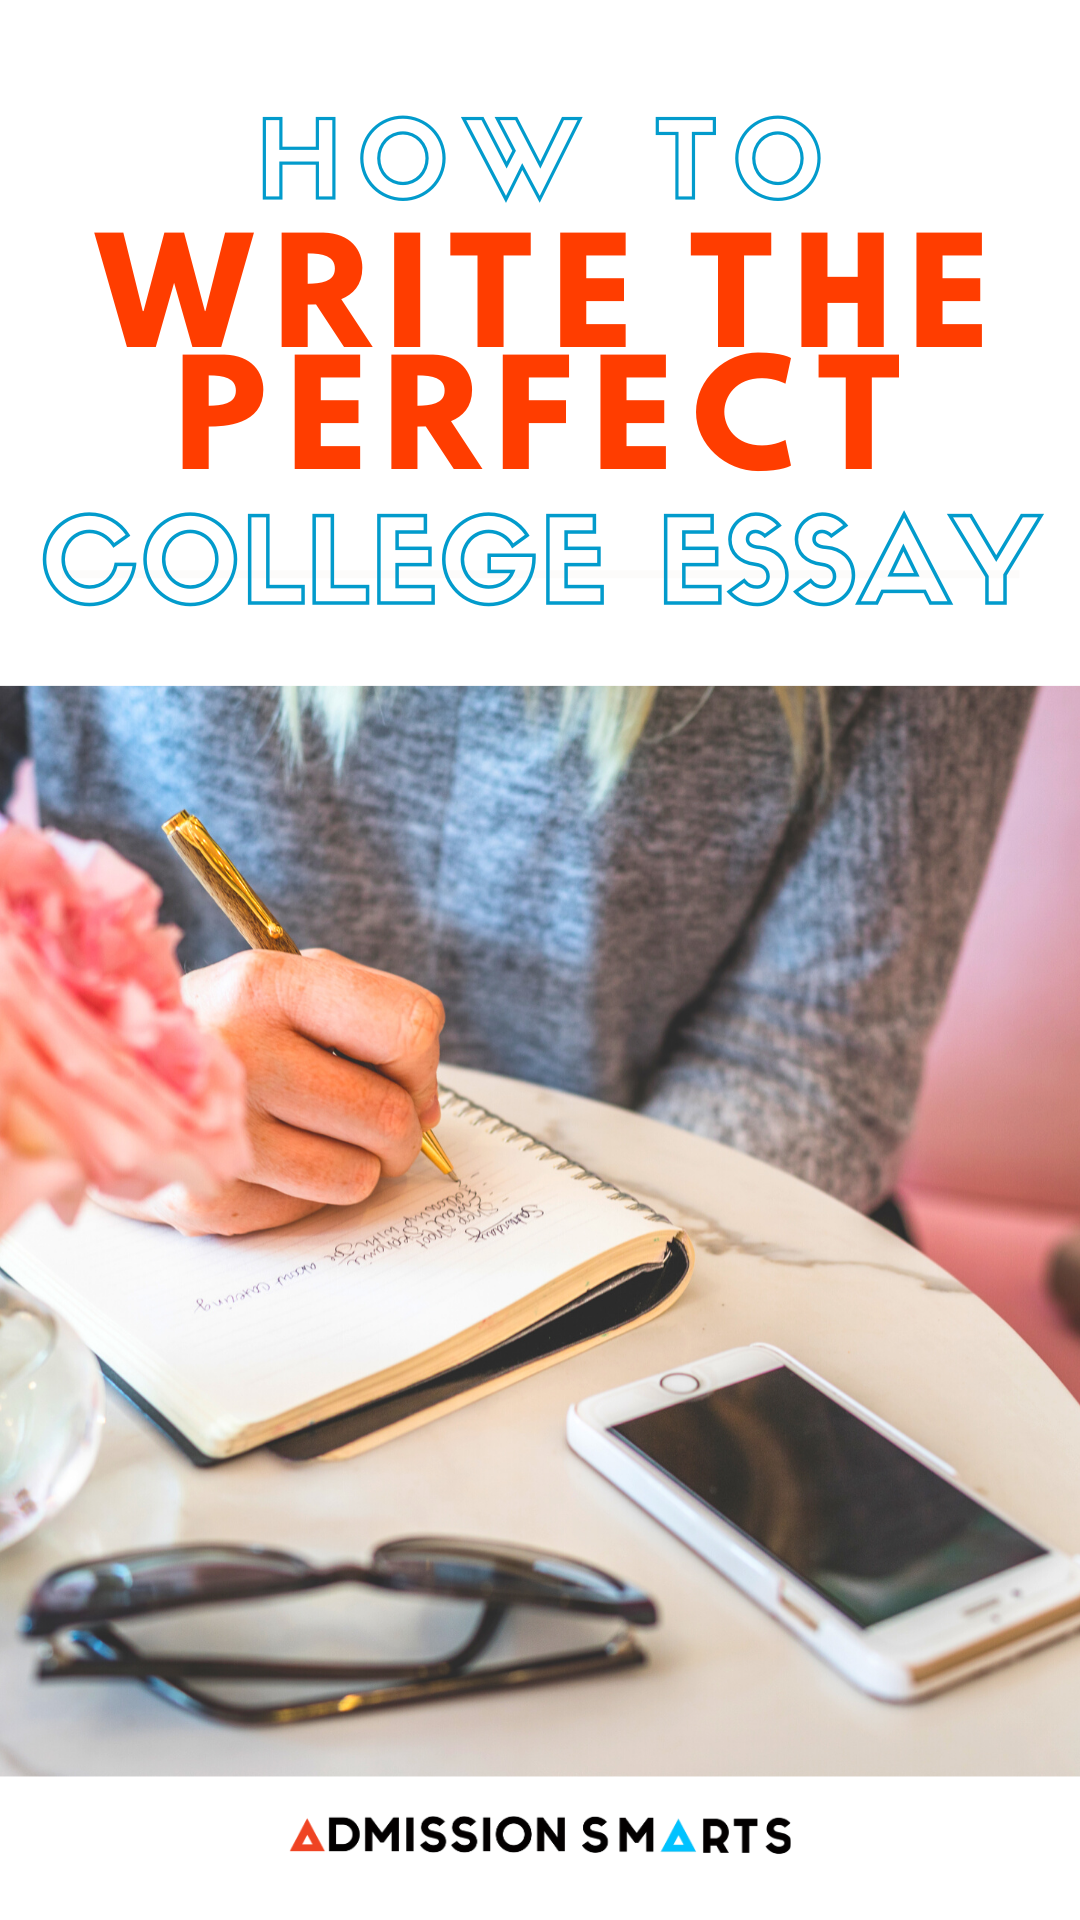 Application essay writing how to improve